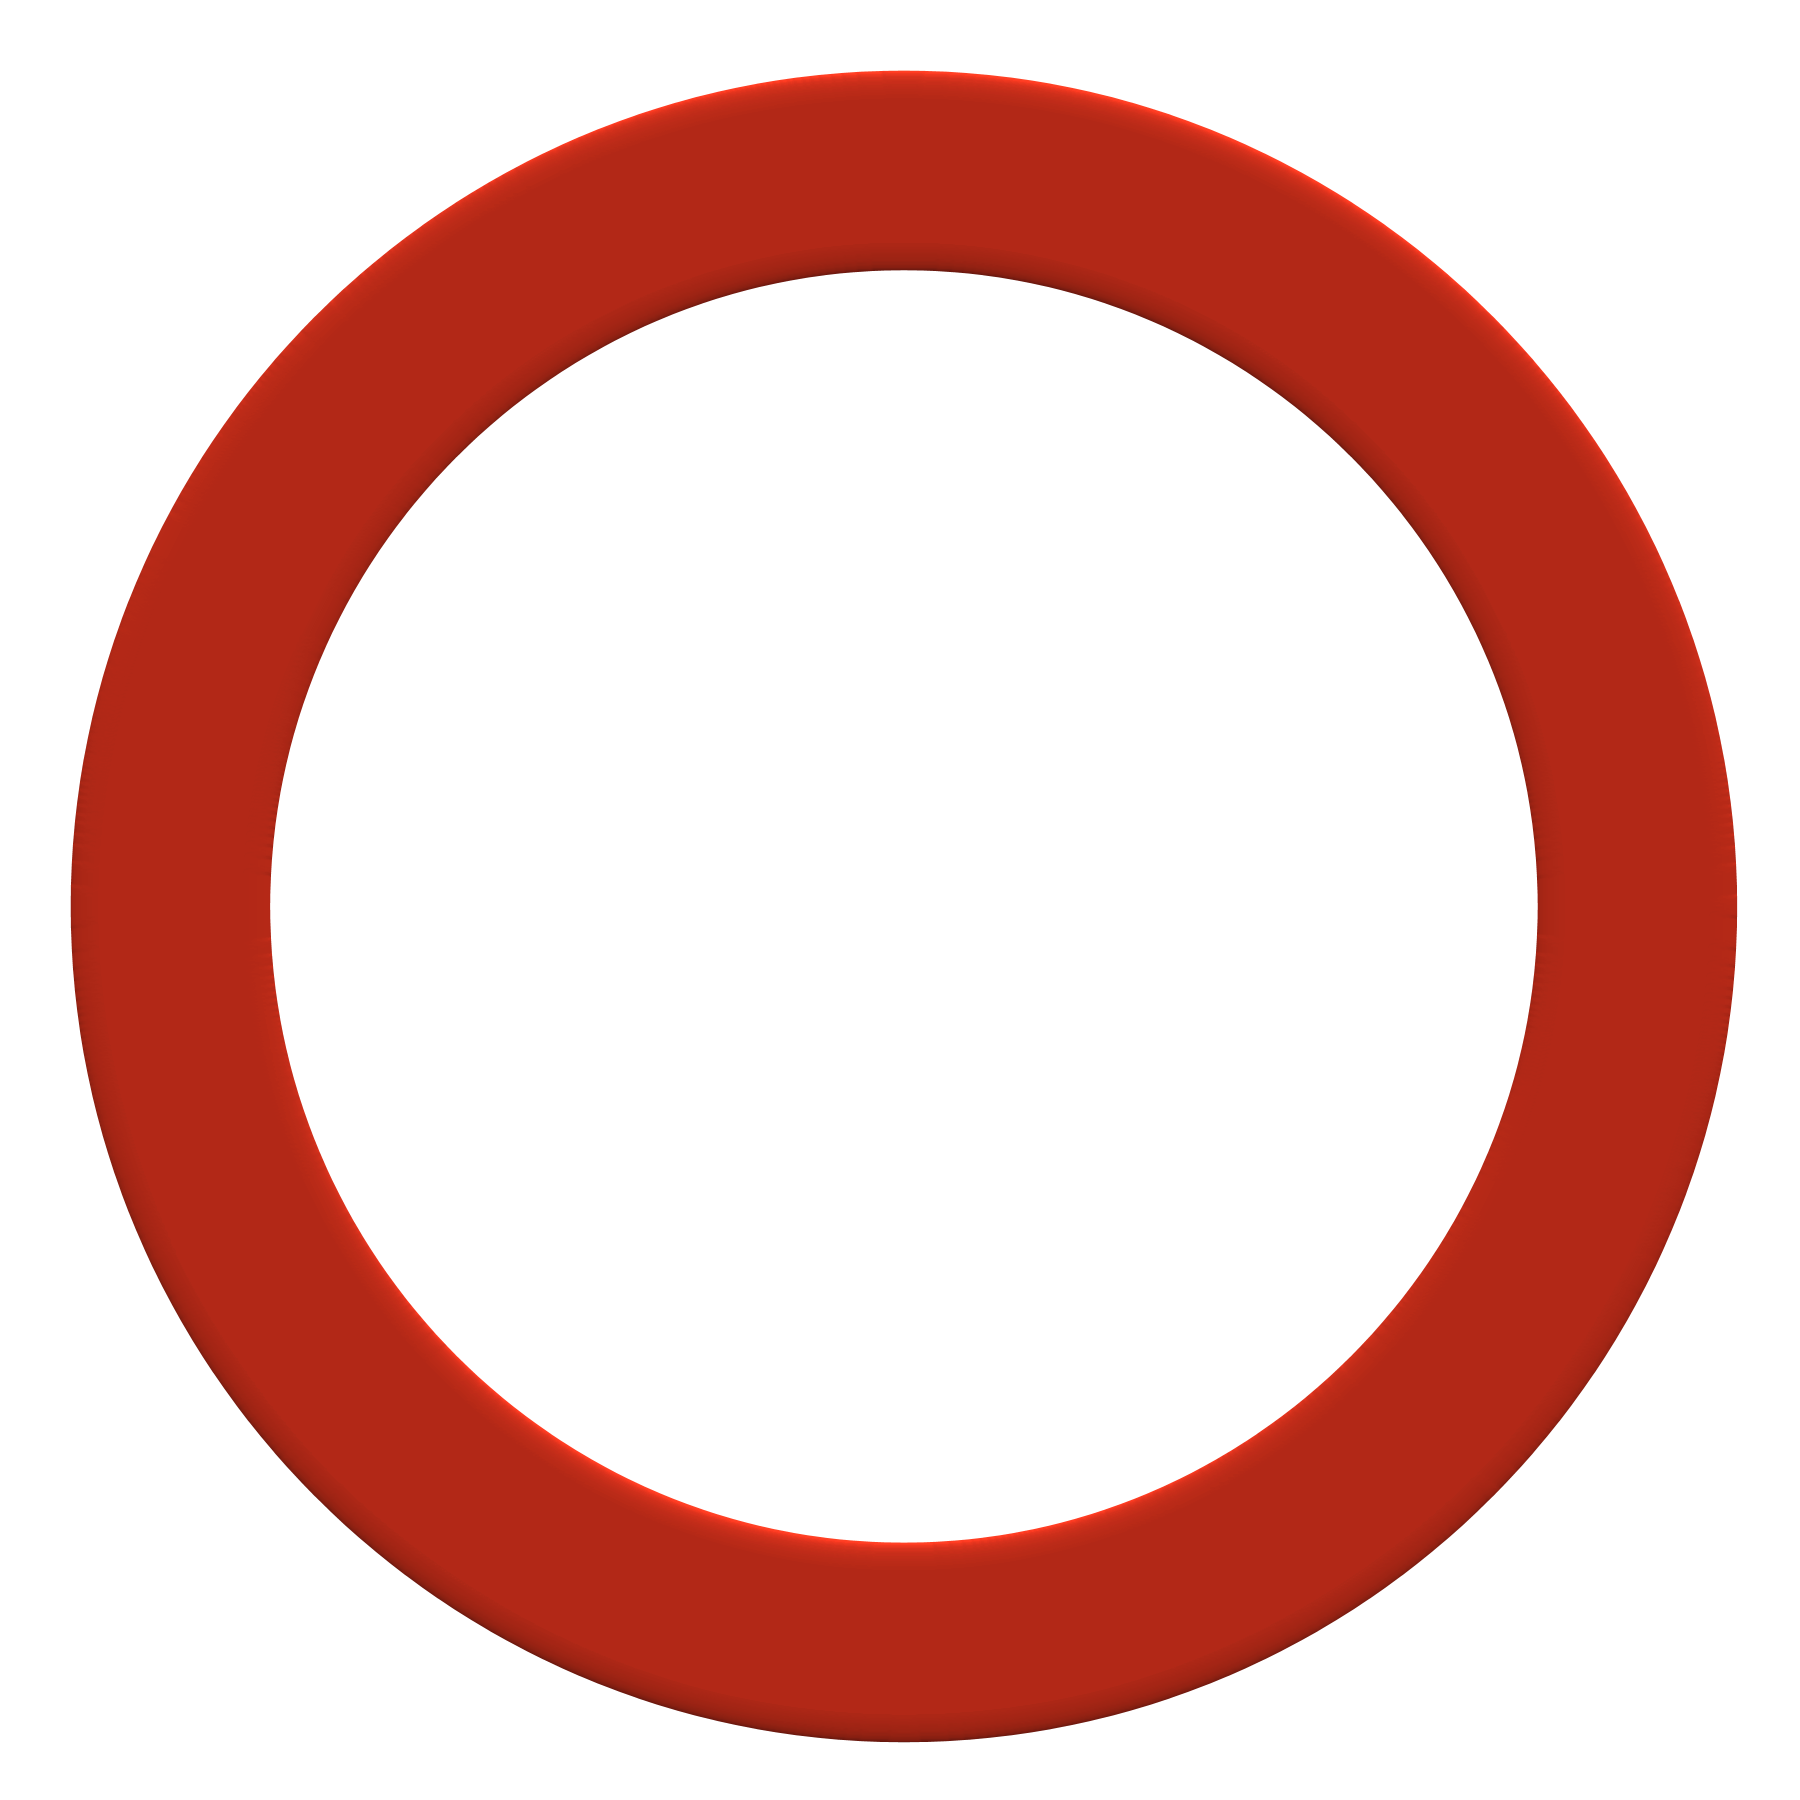 Red circle png. Images transparent free download